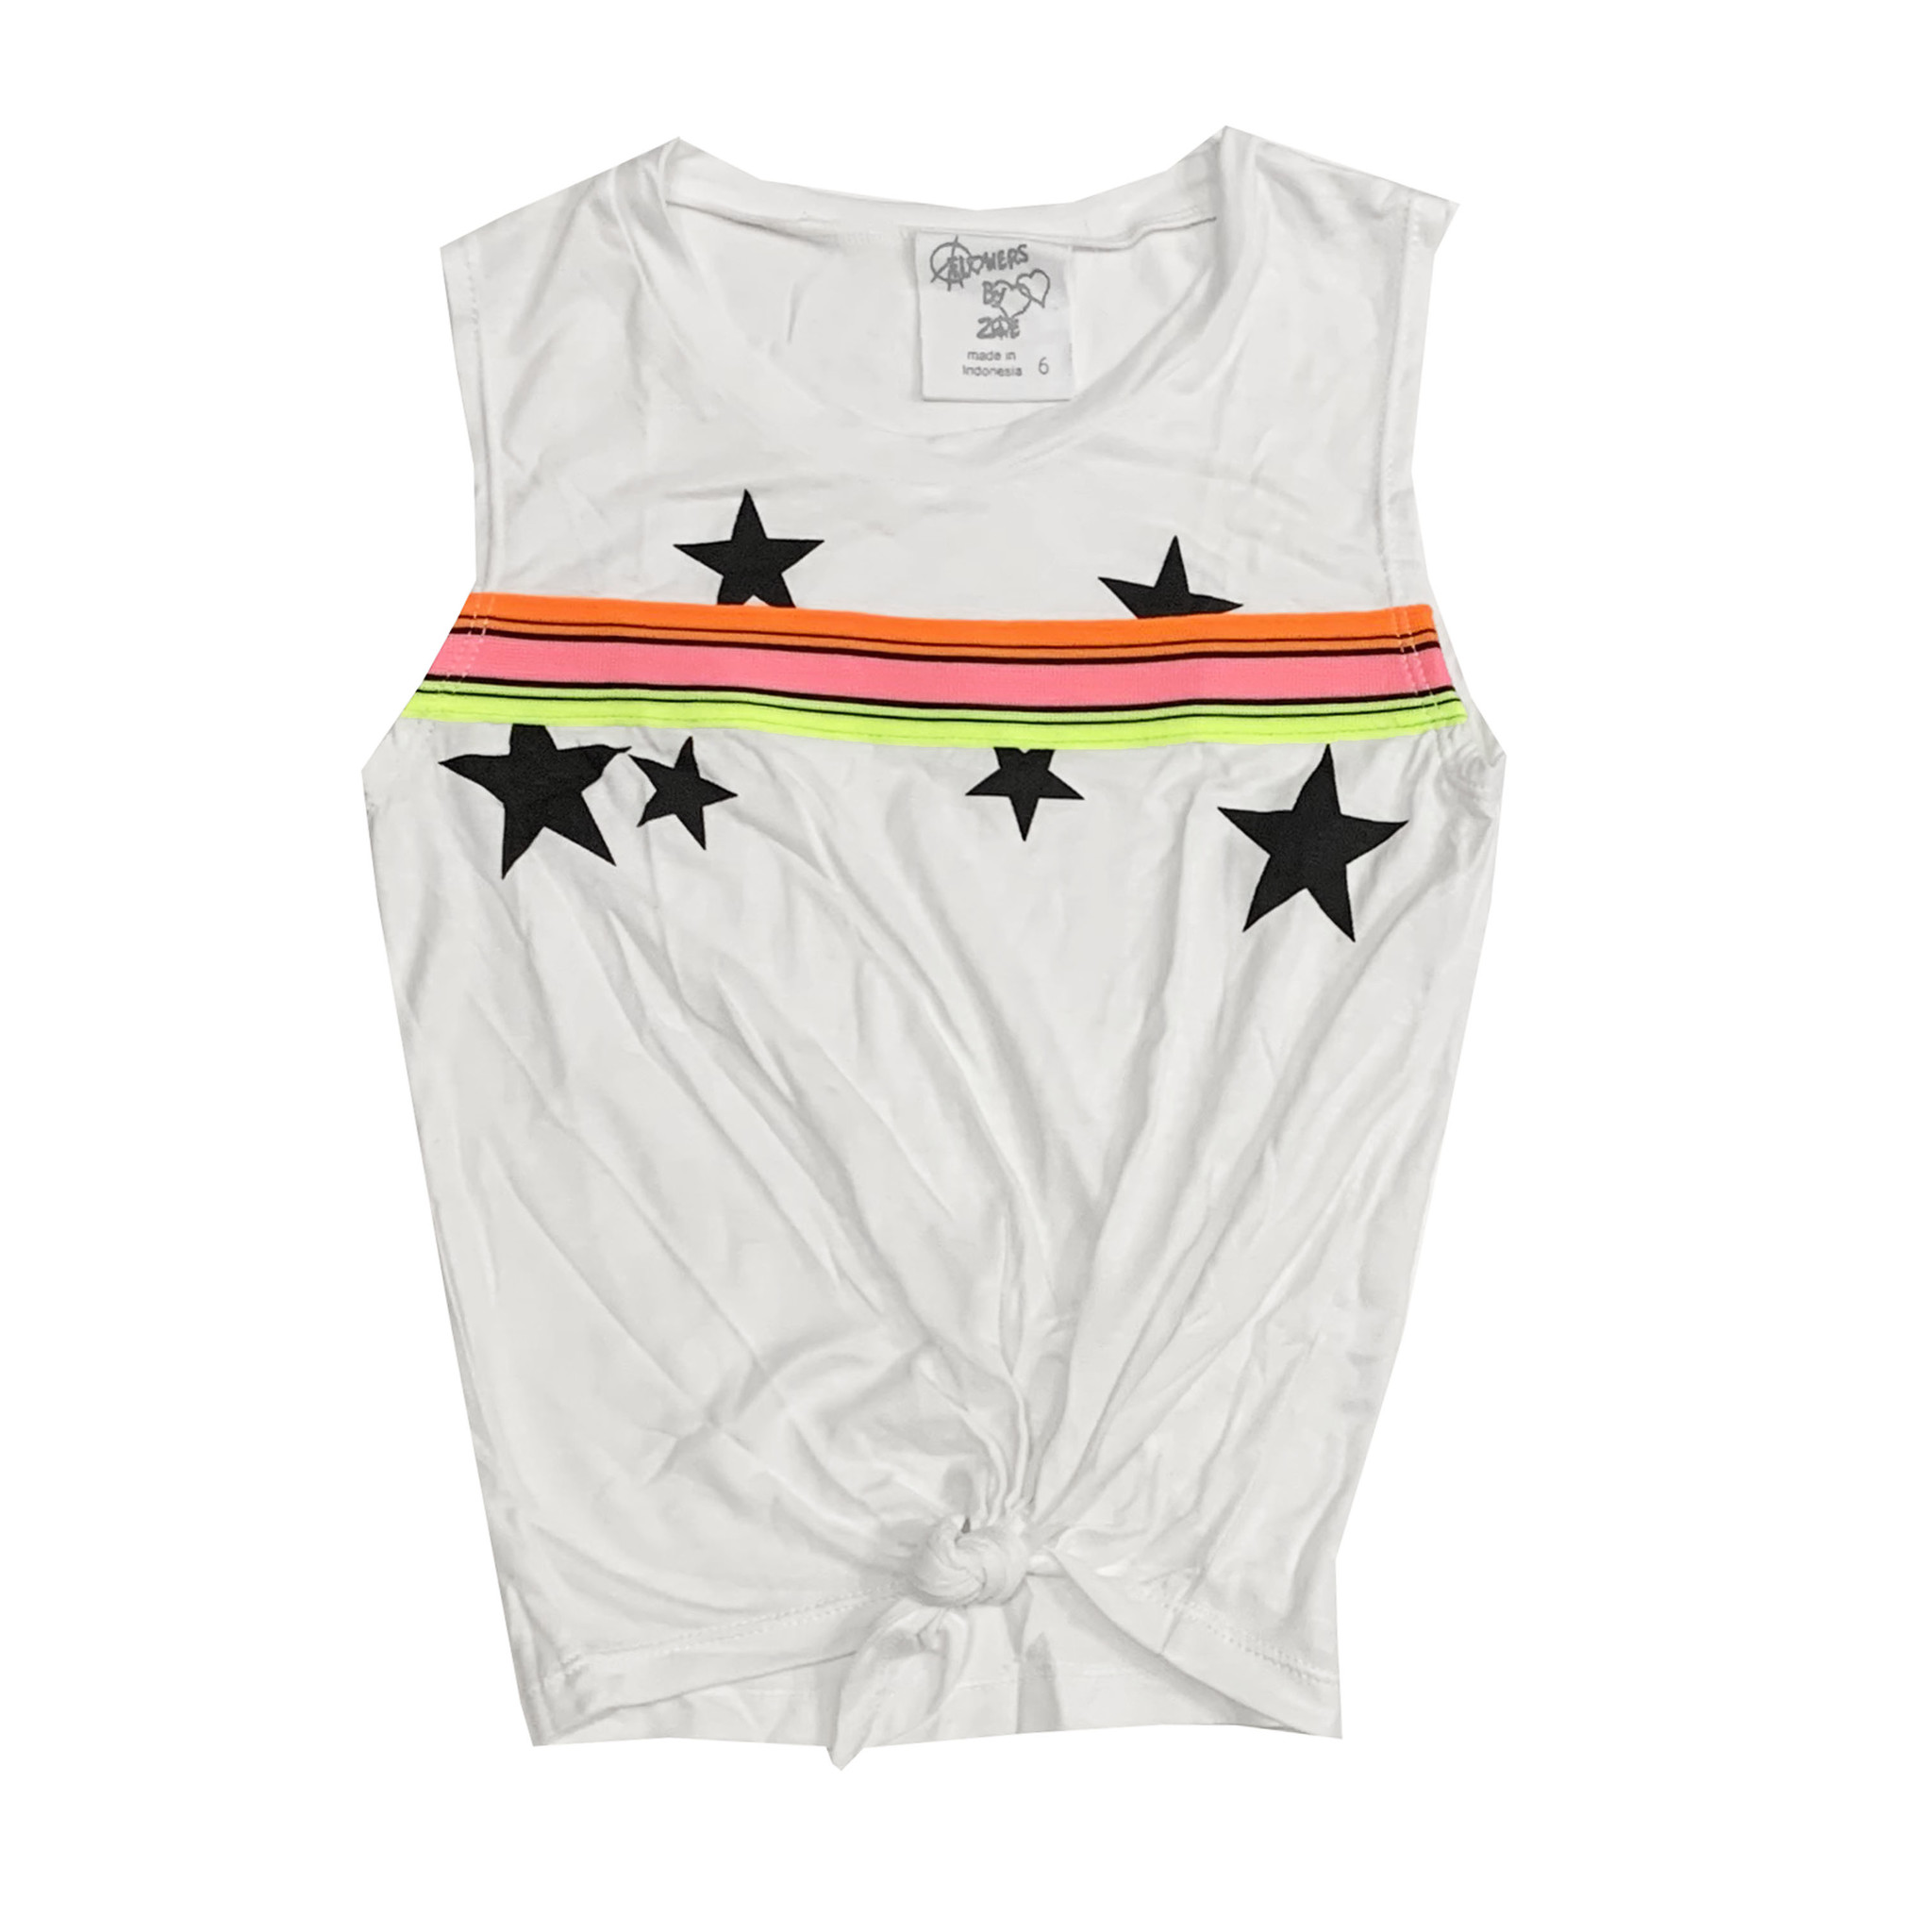 Flowers by Zoe White Neon Taping Knot Tank with Stars